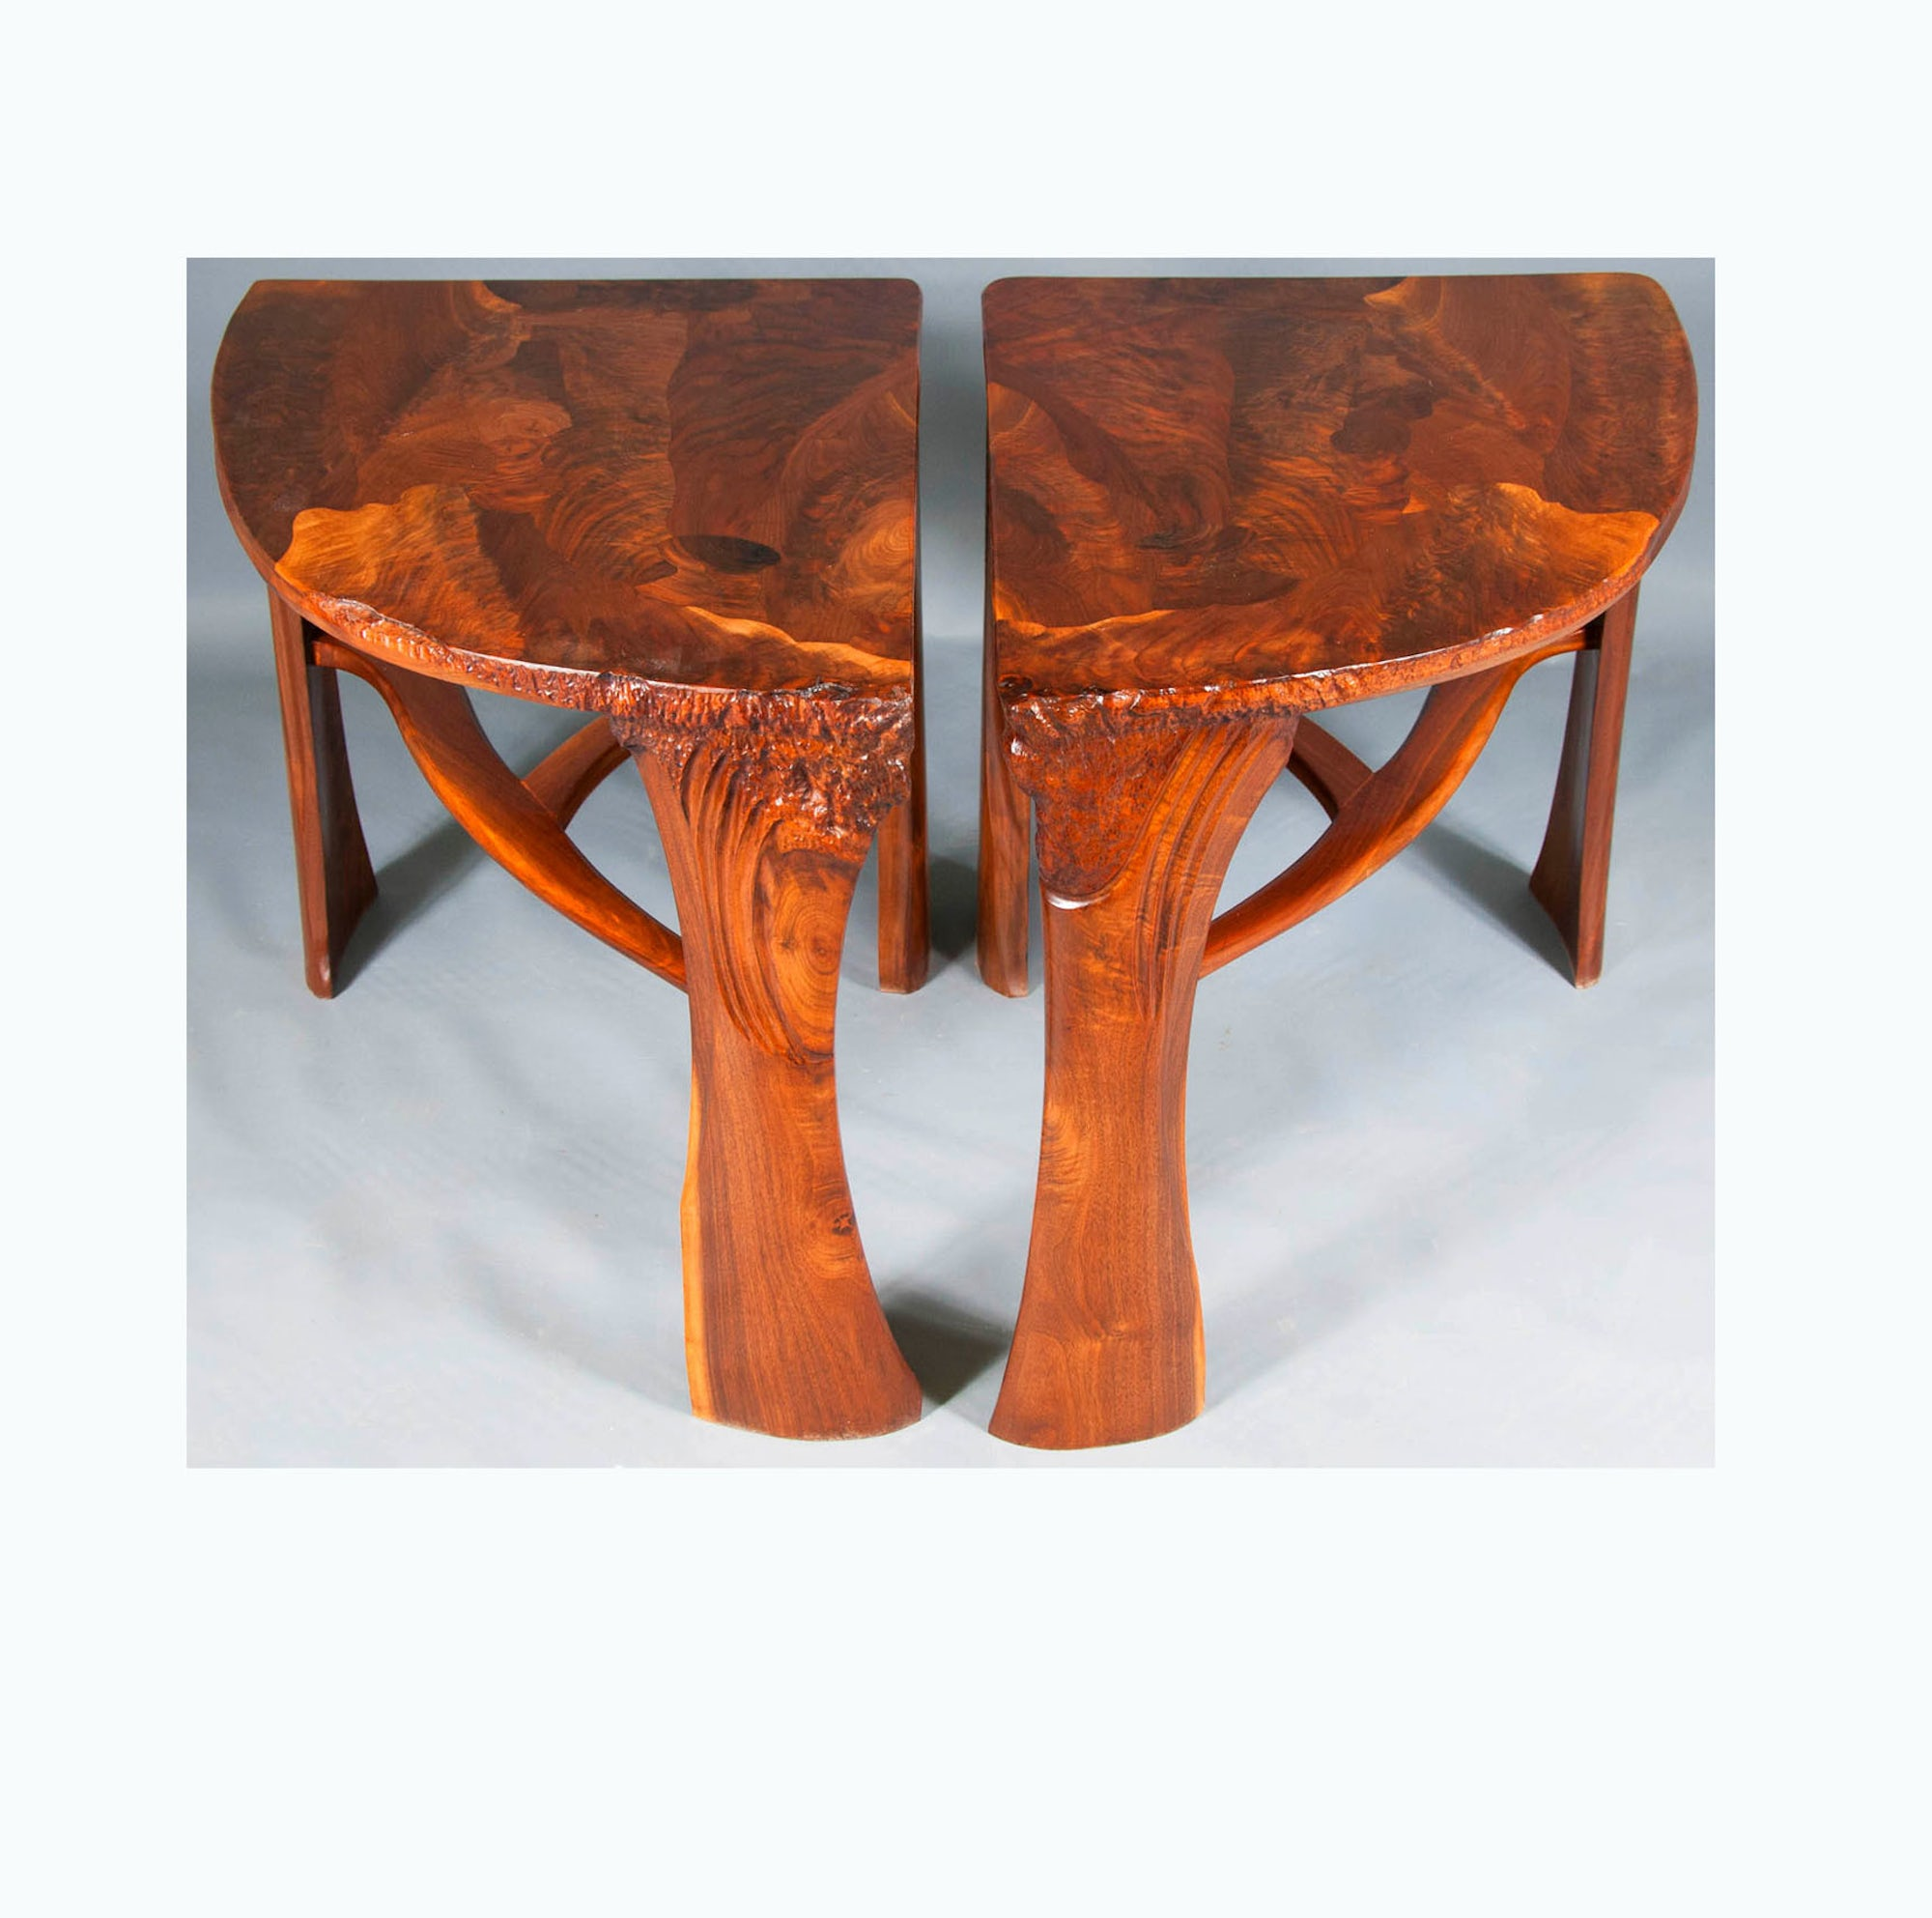 Abstract Organic Expressionism in Furniture™ End Tables (2014)